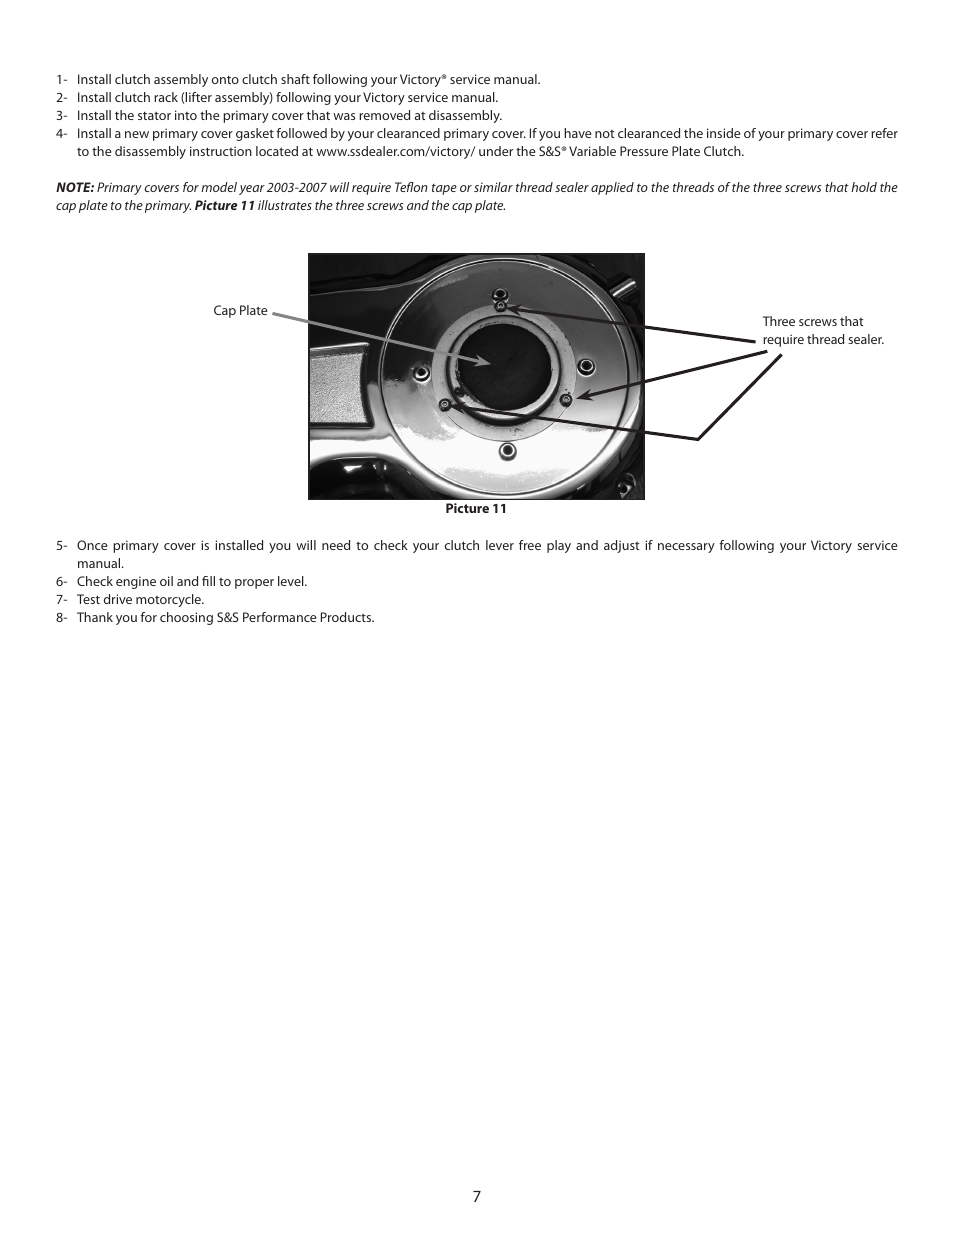 Ss Cycle Variable Pressure Plate Clutch Kit Pn 106 2843 For Victory Motorcycle Engine Diagram Motorcycles User Manual Page 7 8